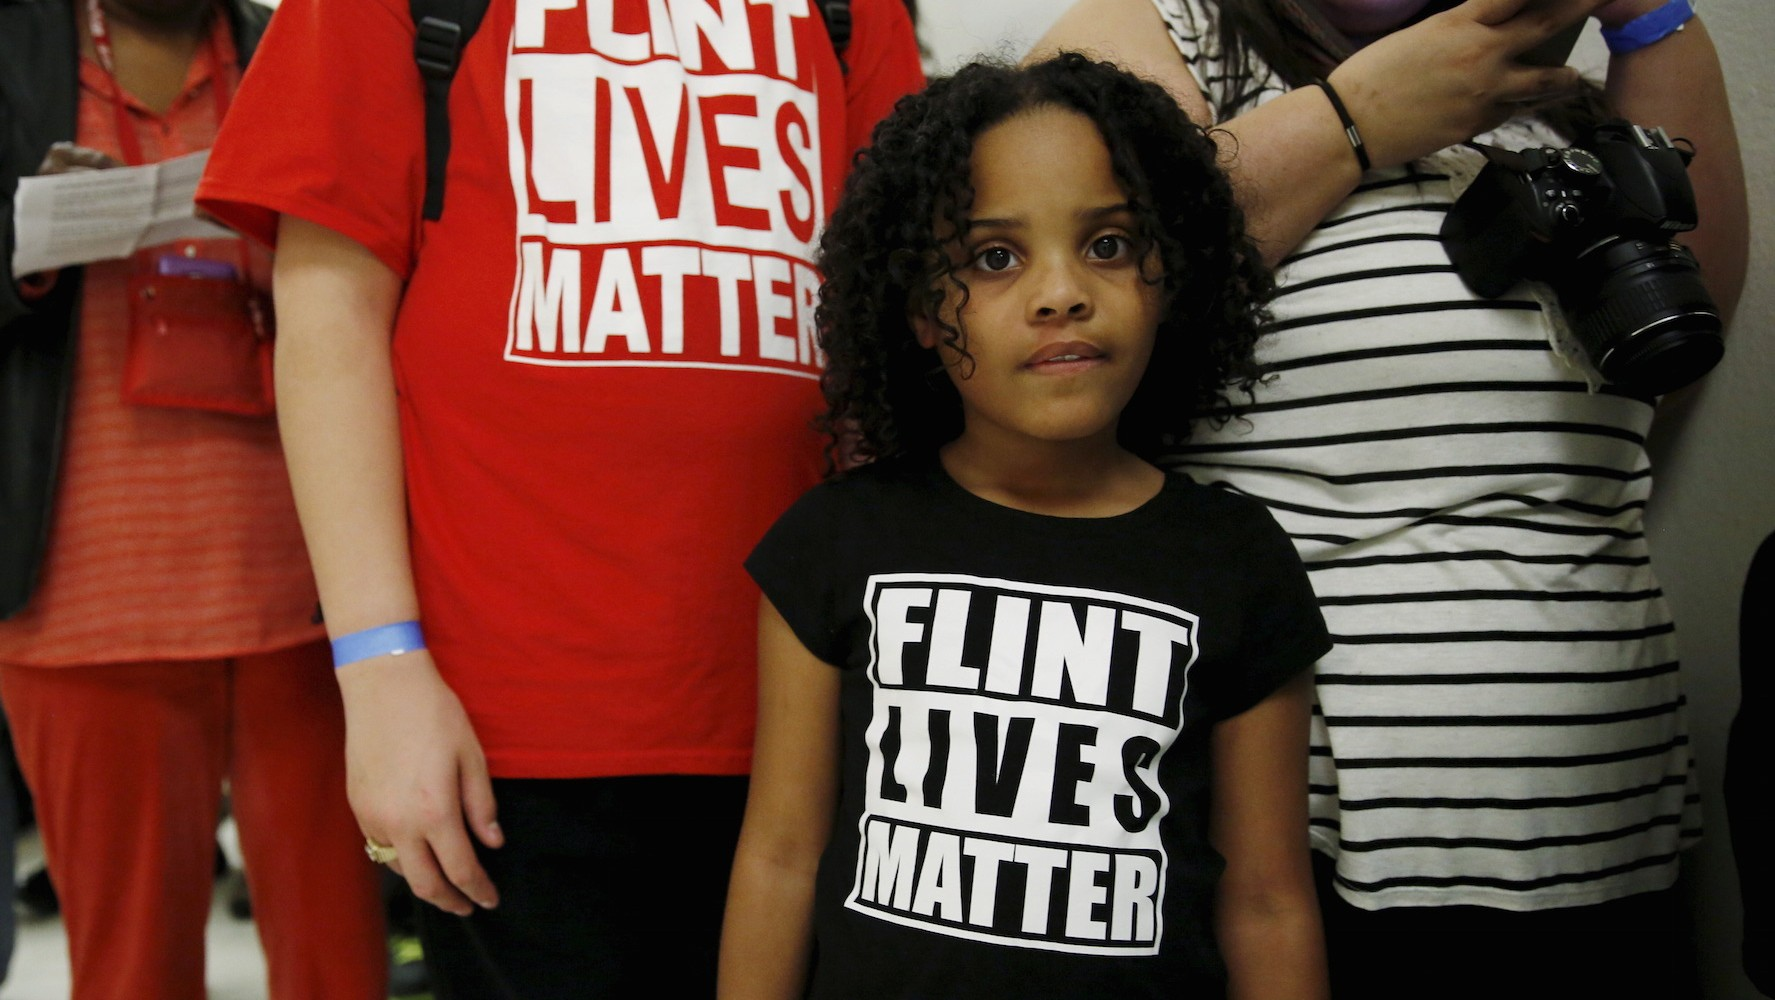 Flint's lead crisis will cost each of its children $50,000 in their lifetimes